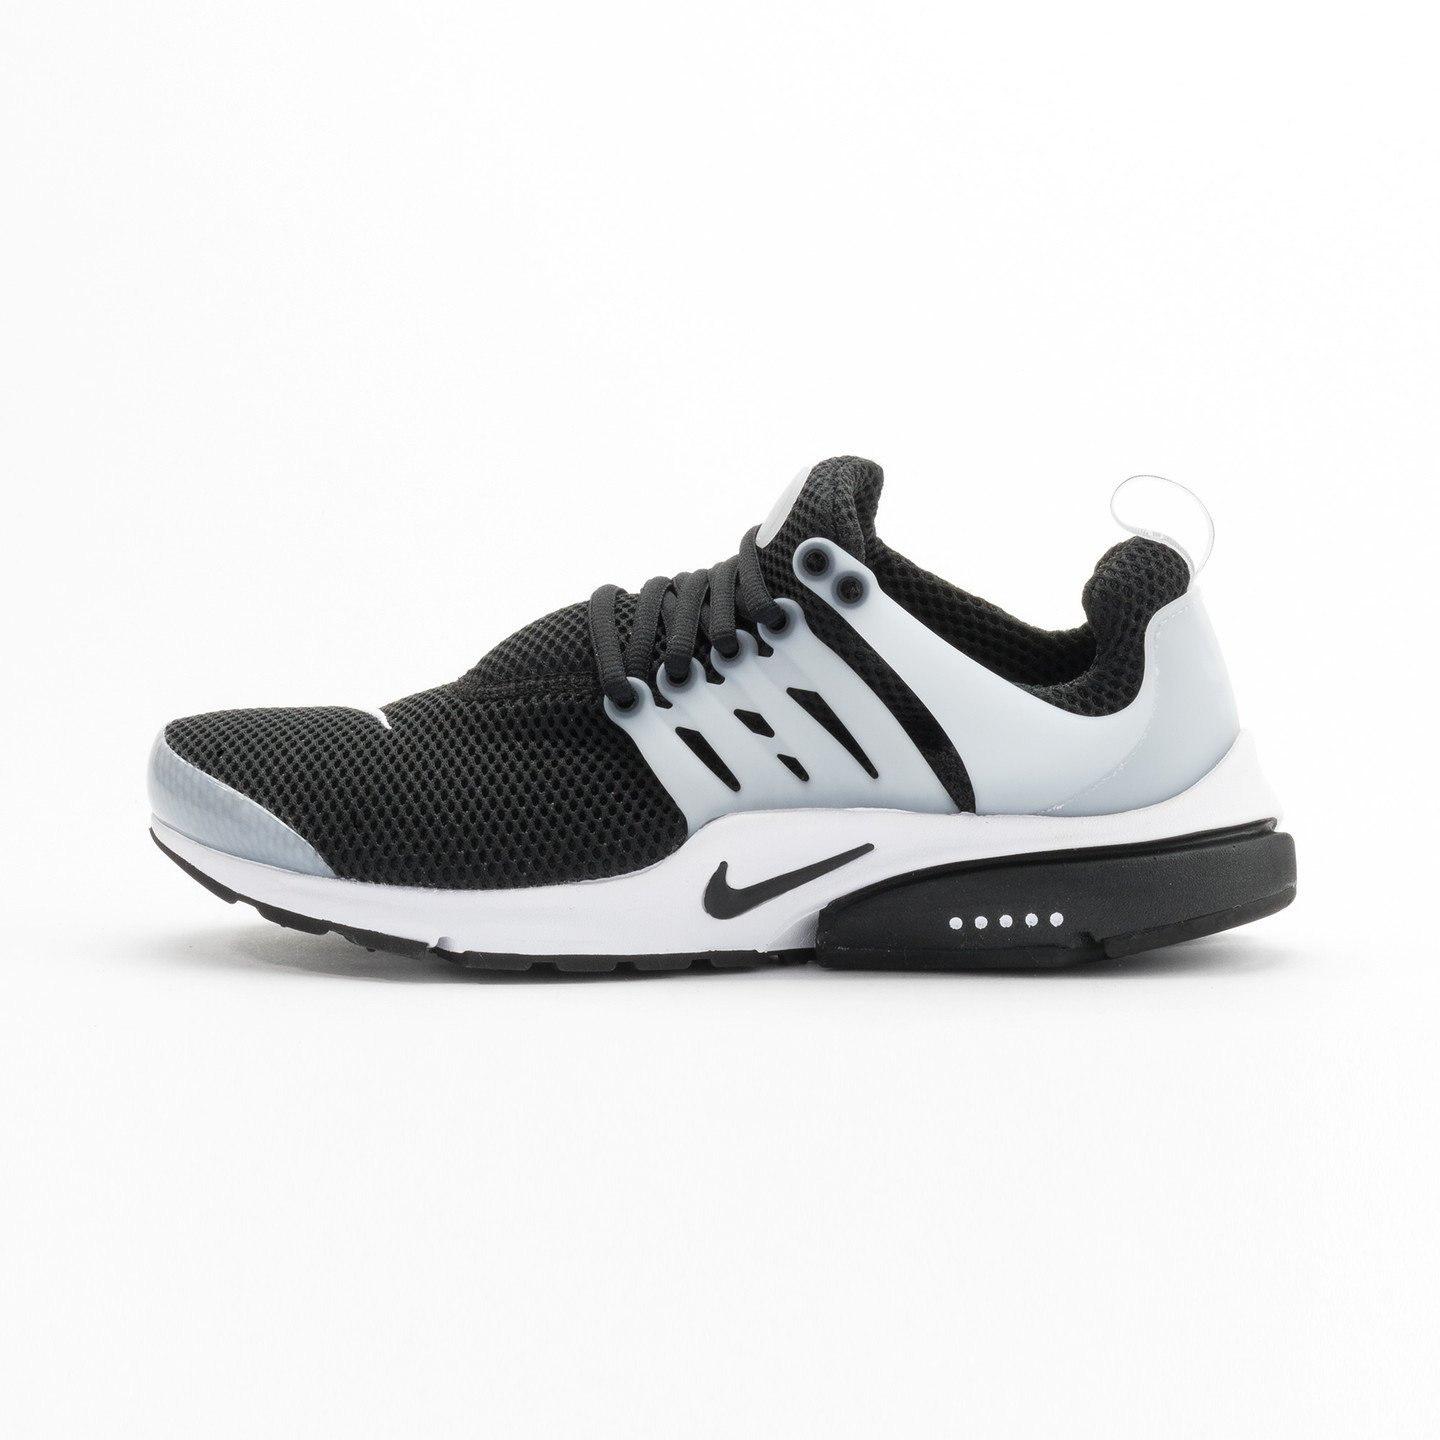 Nike Air Presto Flyknit Ultra Black / White Shadow 848132-010-45